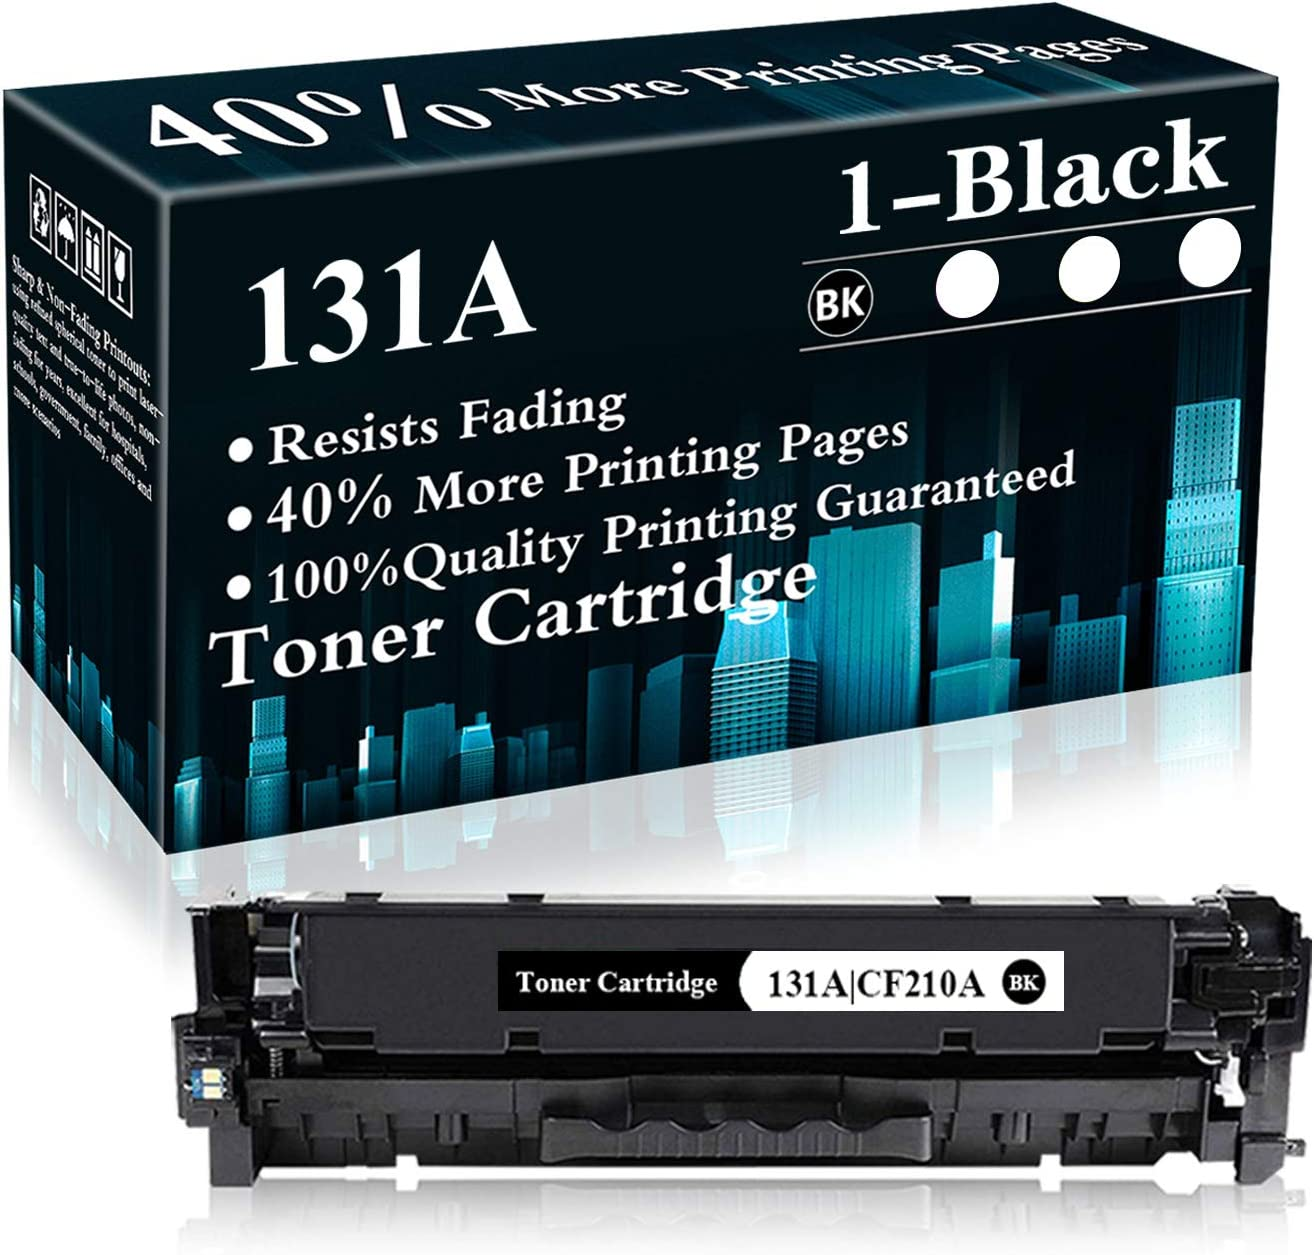 1 Pack 131A   CF210A Remanufactured Toner Cartridge Replacement for HP Color Laserjet Pro M251n(CF146A) M251nw(CF147A) M276n(CF144A) M276nw(CF145A) Printer,Sold by TopInk